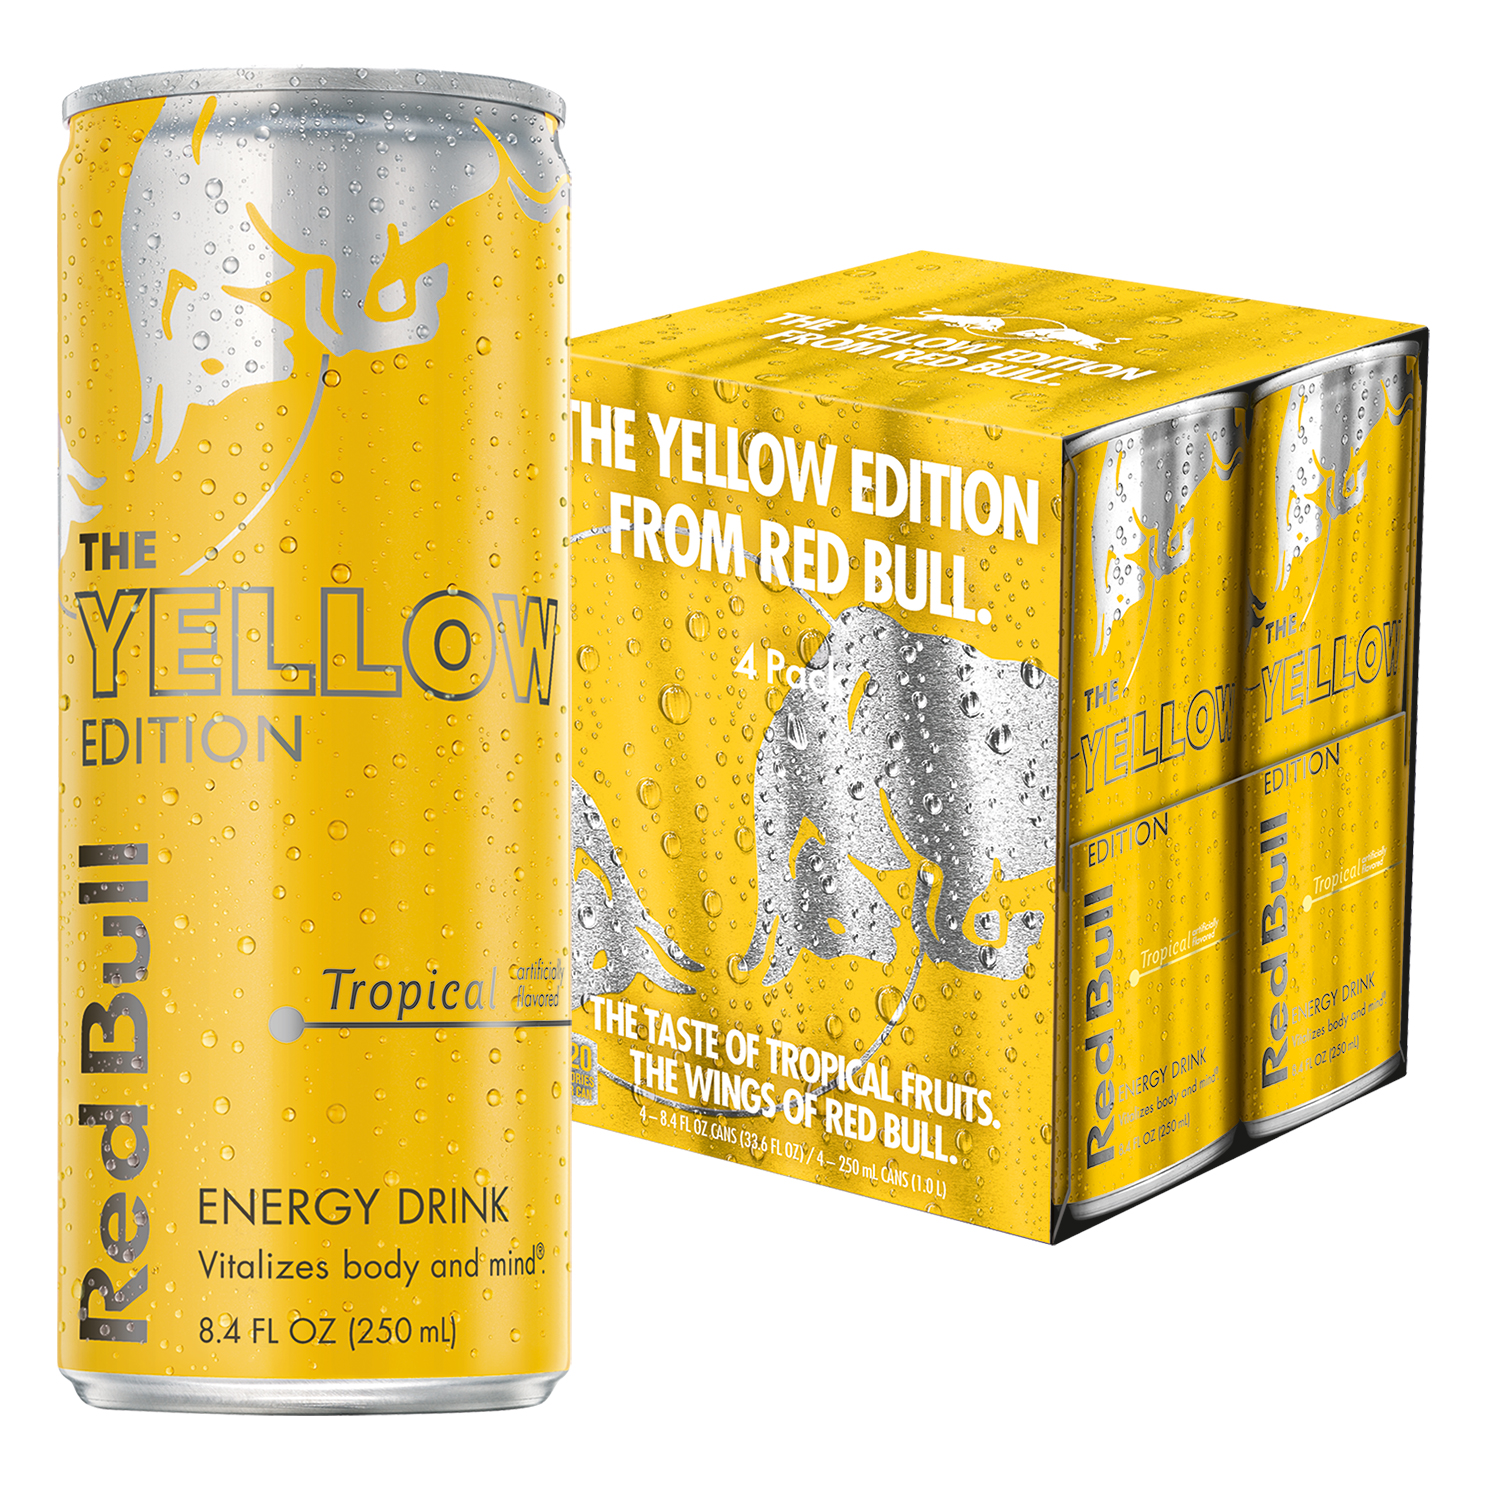 Red Bull Yellow Edition, Tropical Energy Drink, 8.4 Fl Oz Cans, 4 Pack